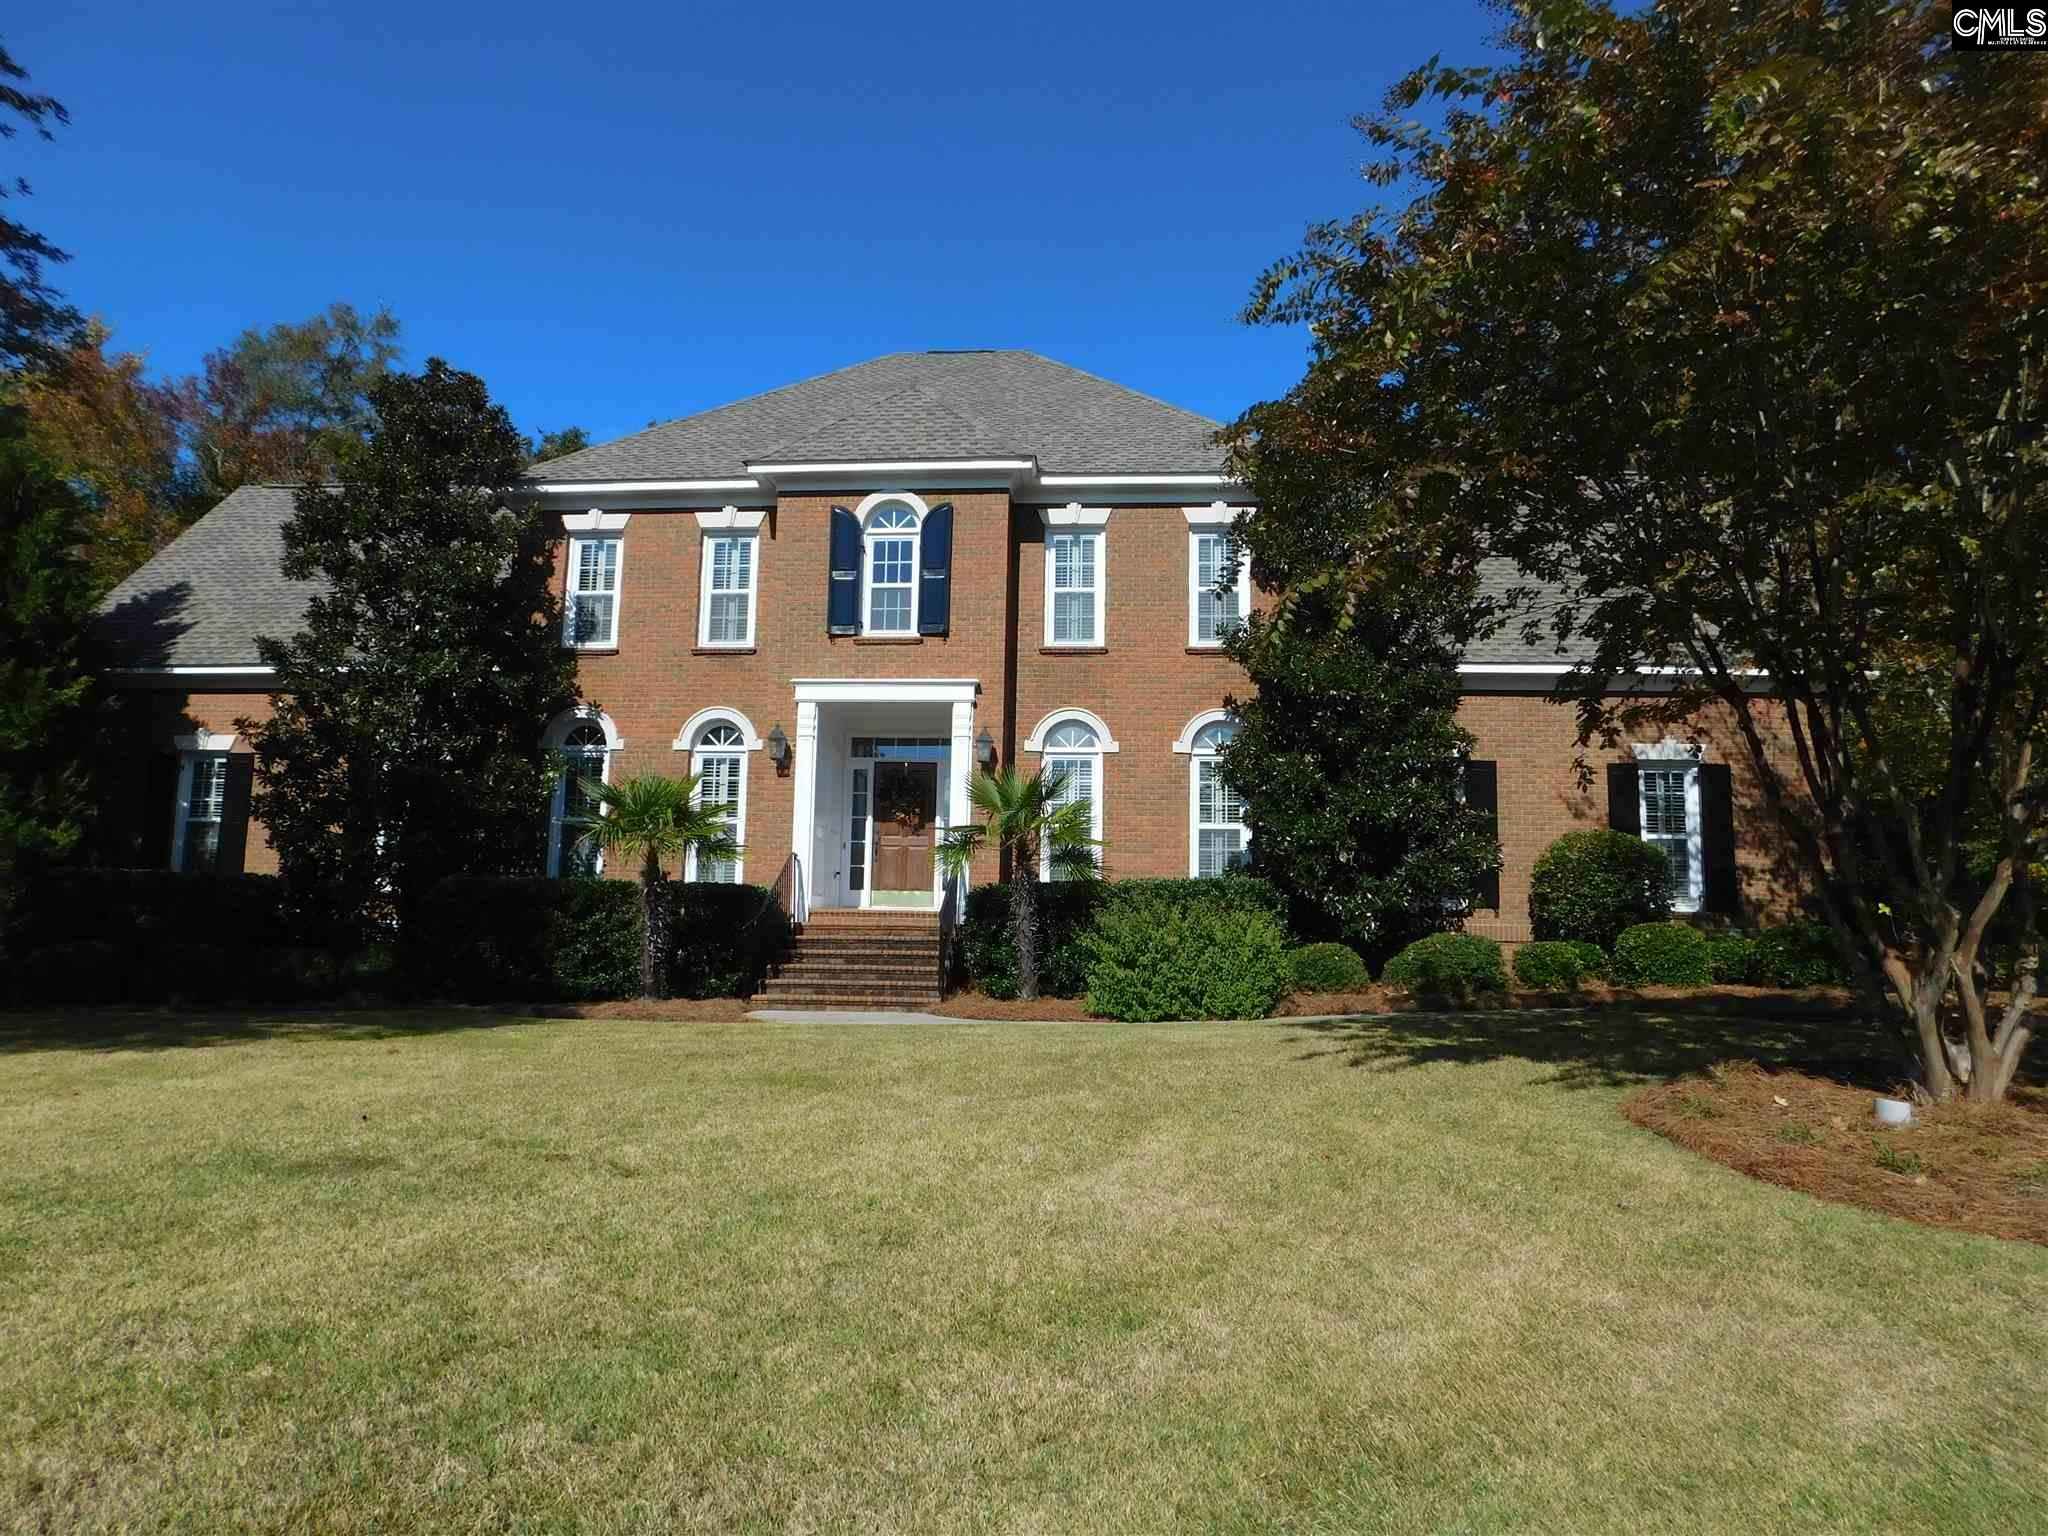 Patio Homes For Sale In Columbia Sc Patio Homes For Sale In Columbia Sc